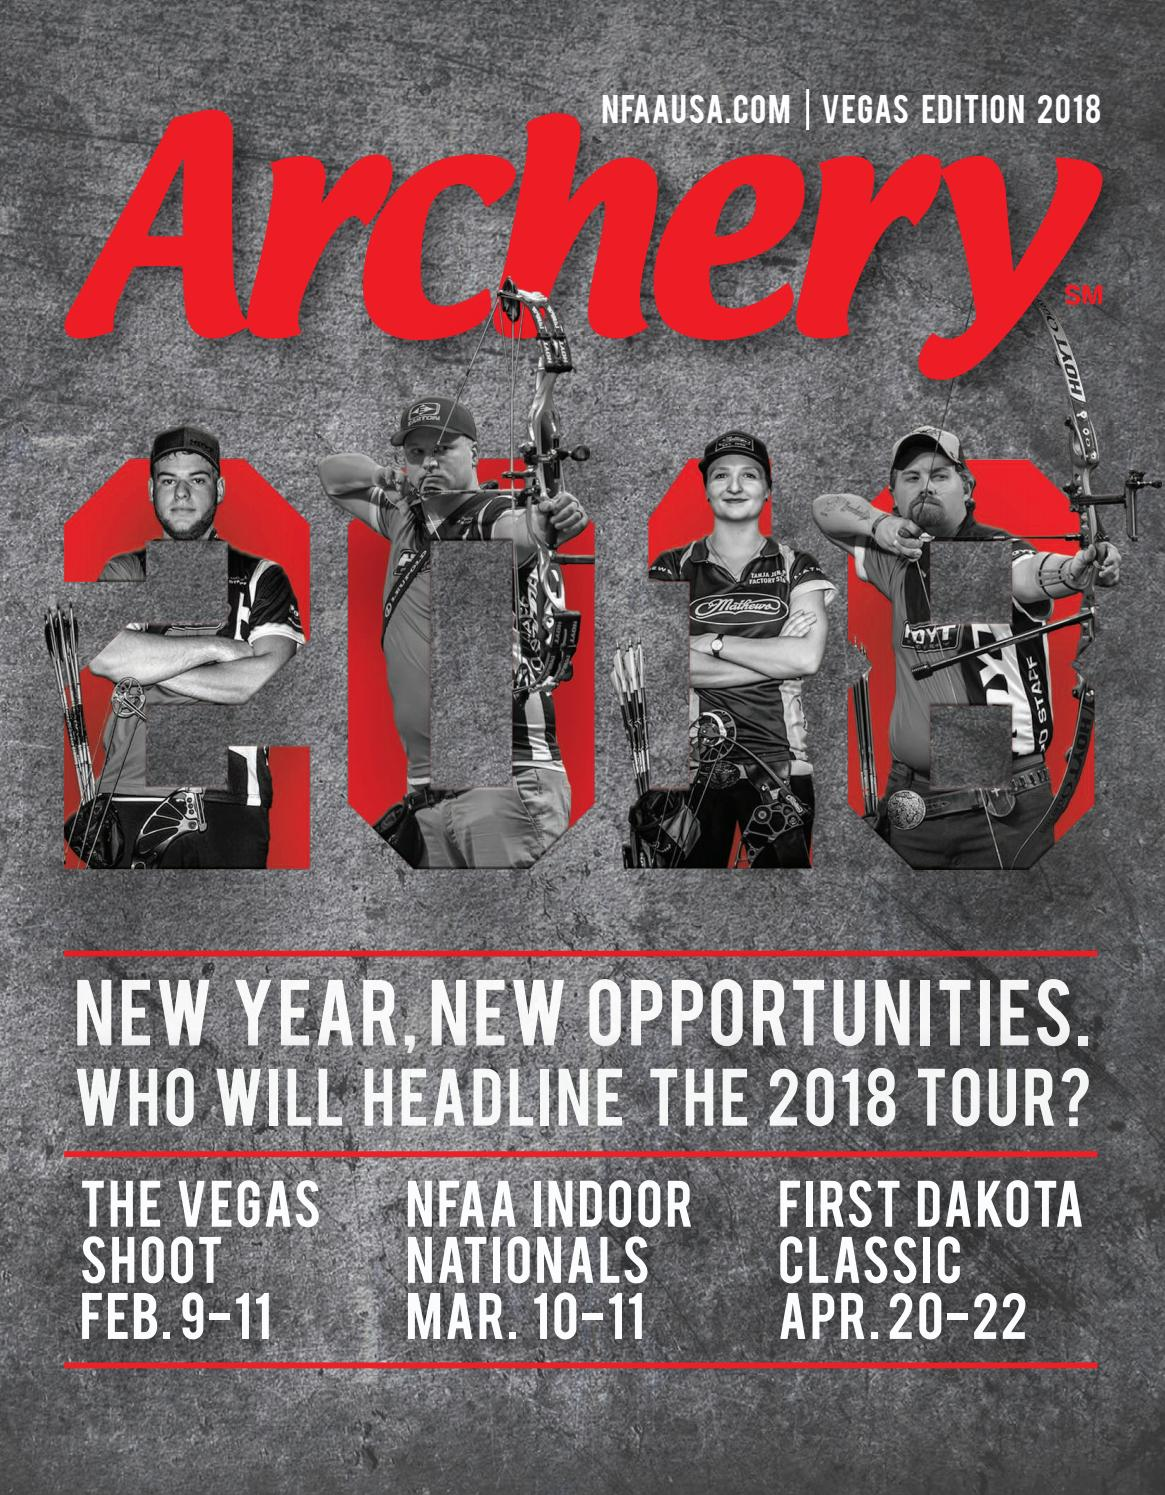 2018- Vegas Edition & Tournament Preview by National Field Archery